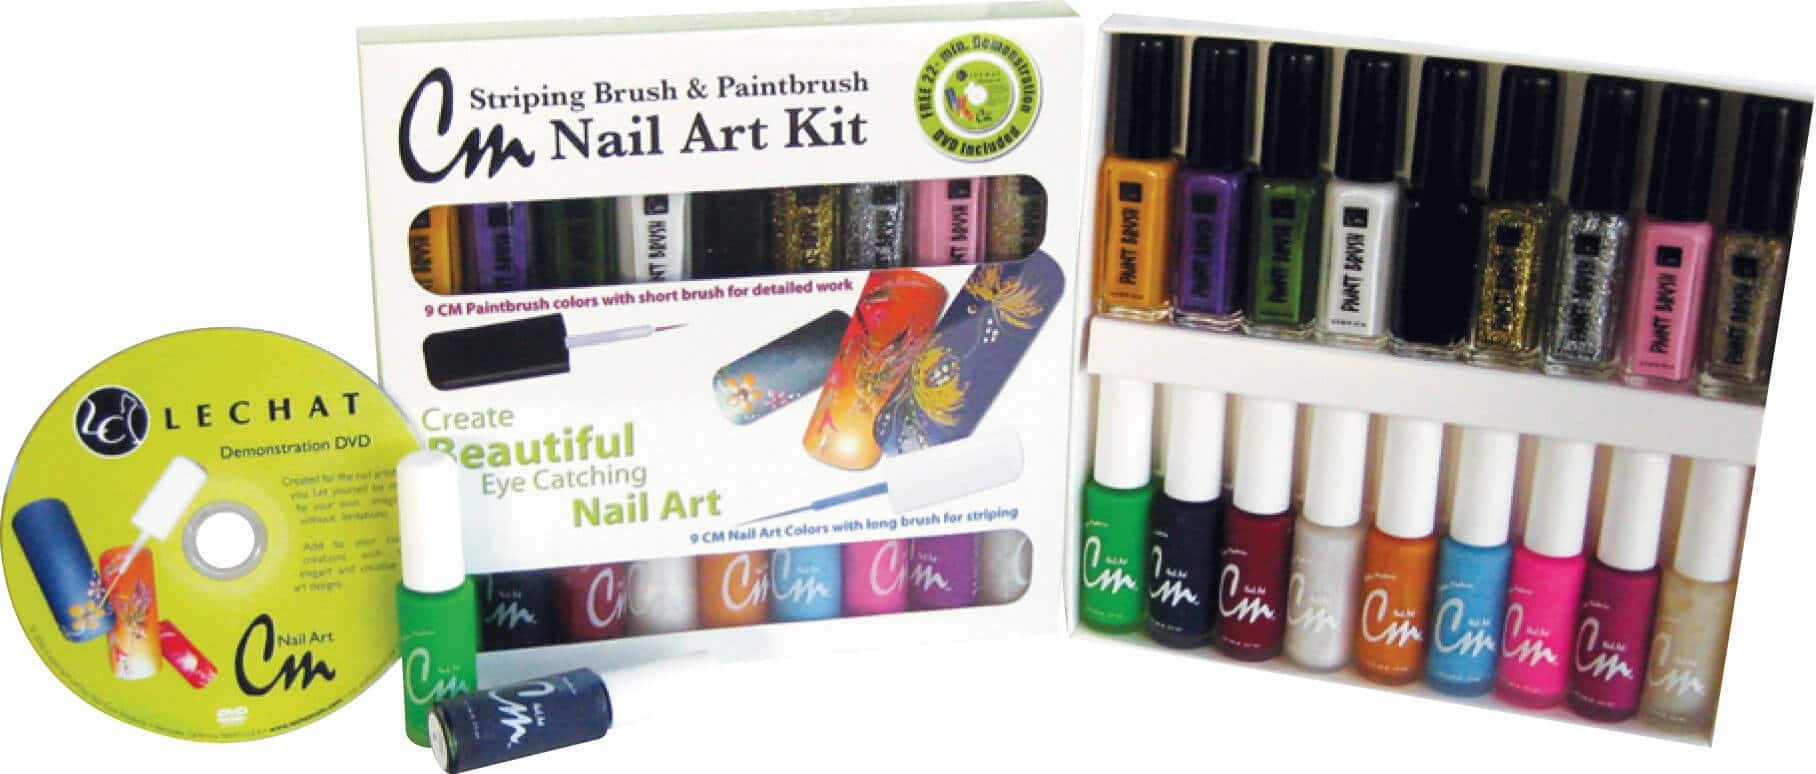 CM - Nail Art - Kit | LeChat Nails